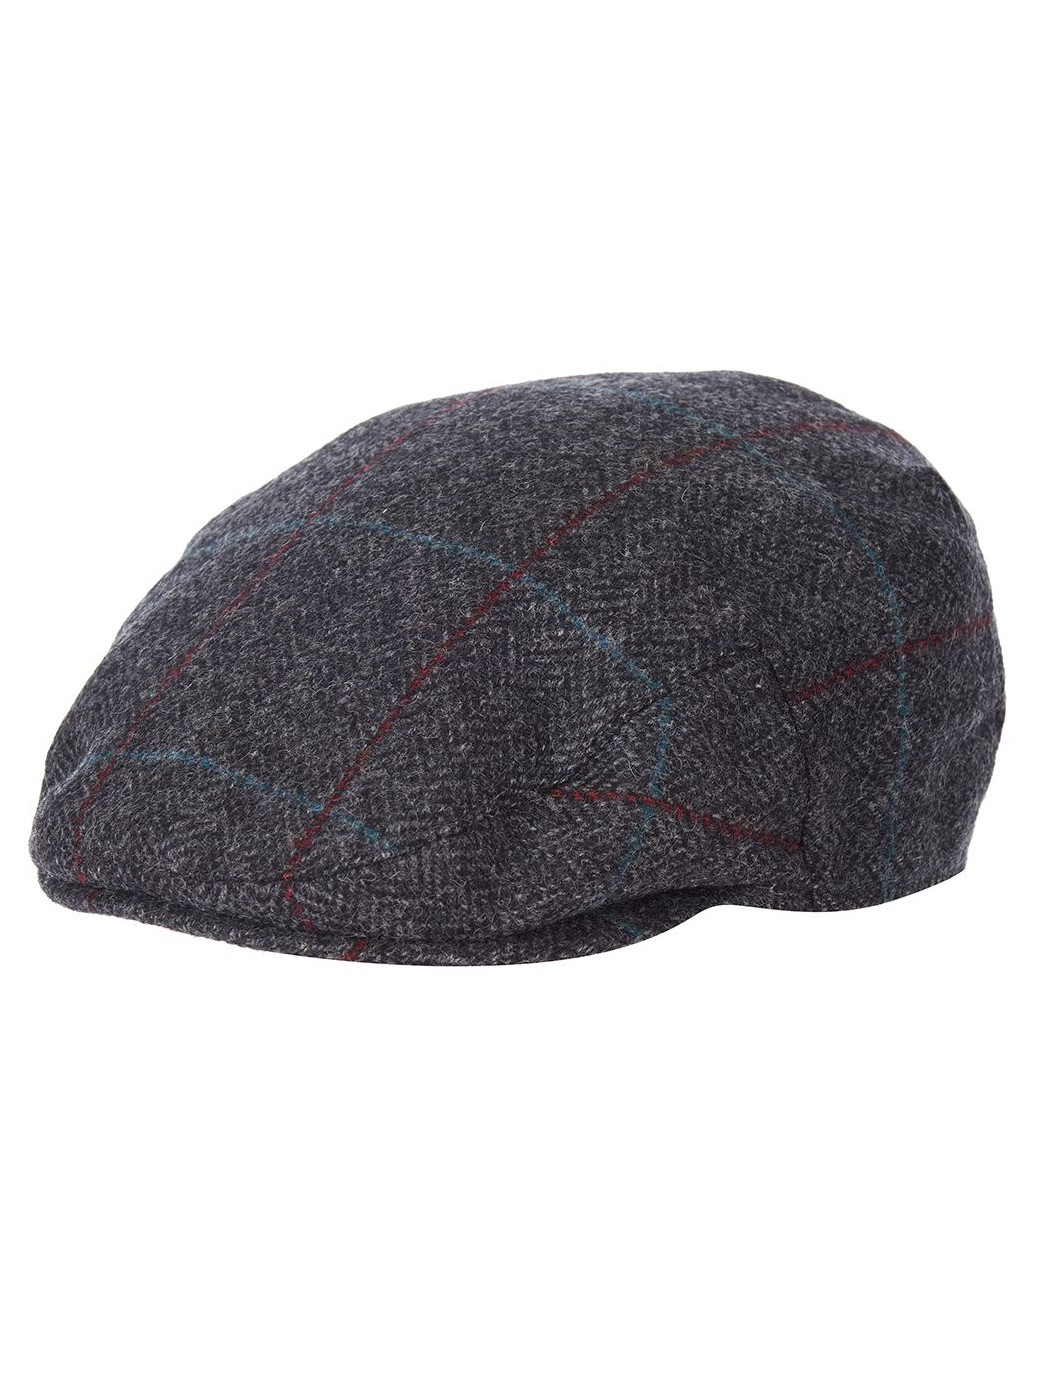 BARBOUR CRIEFF CAP BARBOUR MHA0009 CH31